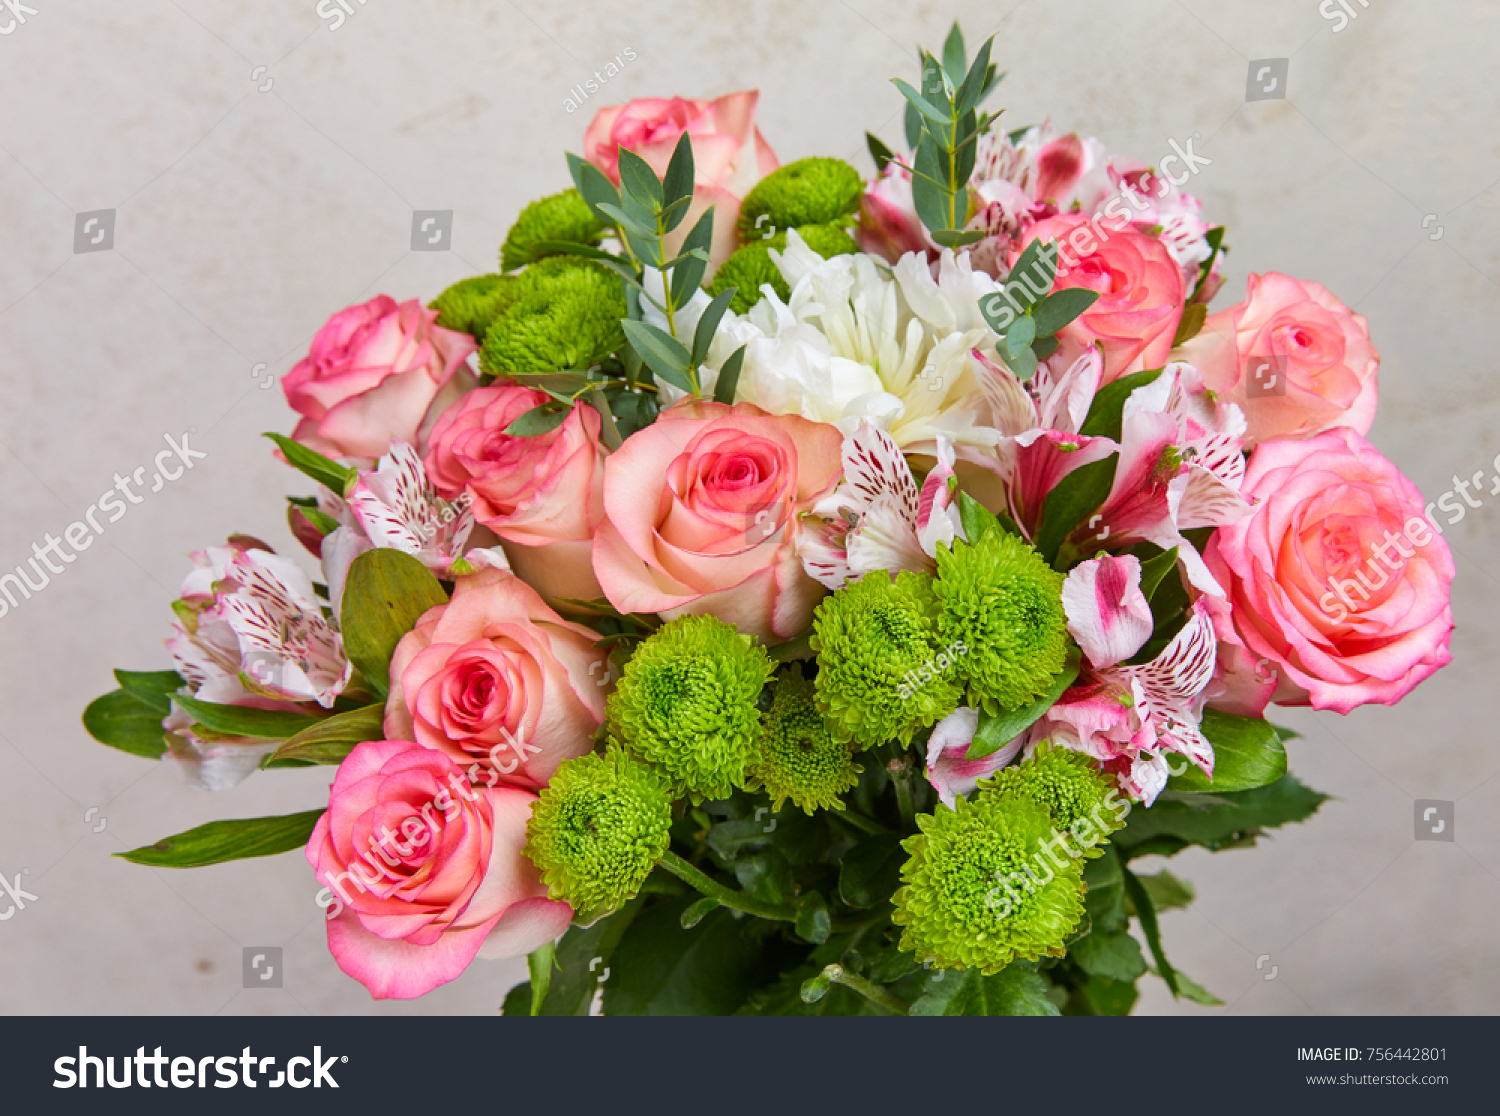 Beautiful Flower Bouquet Stock Photo Edit Now 756442801 Shutterstock